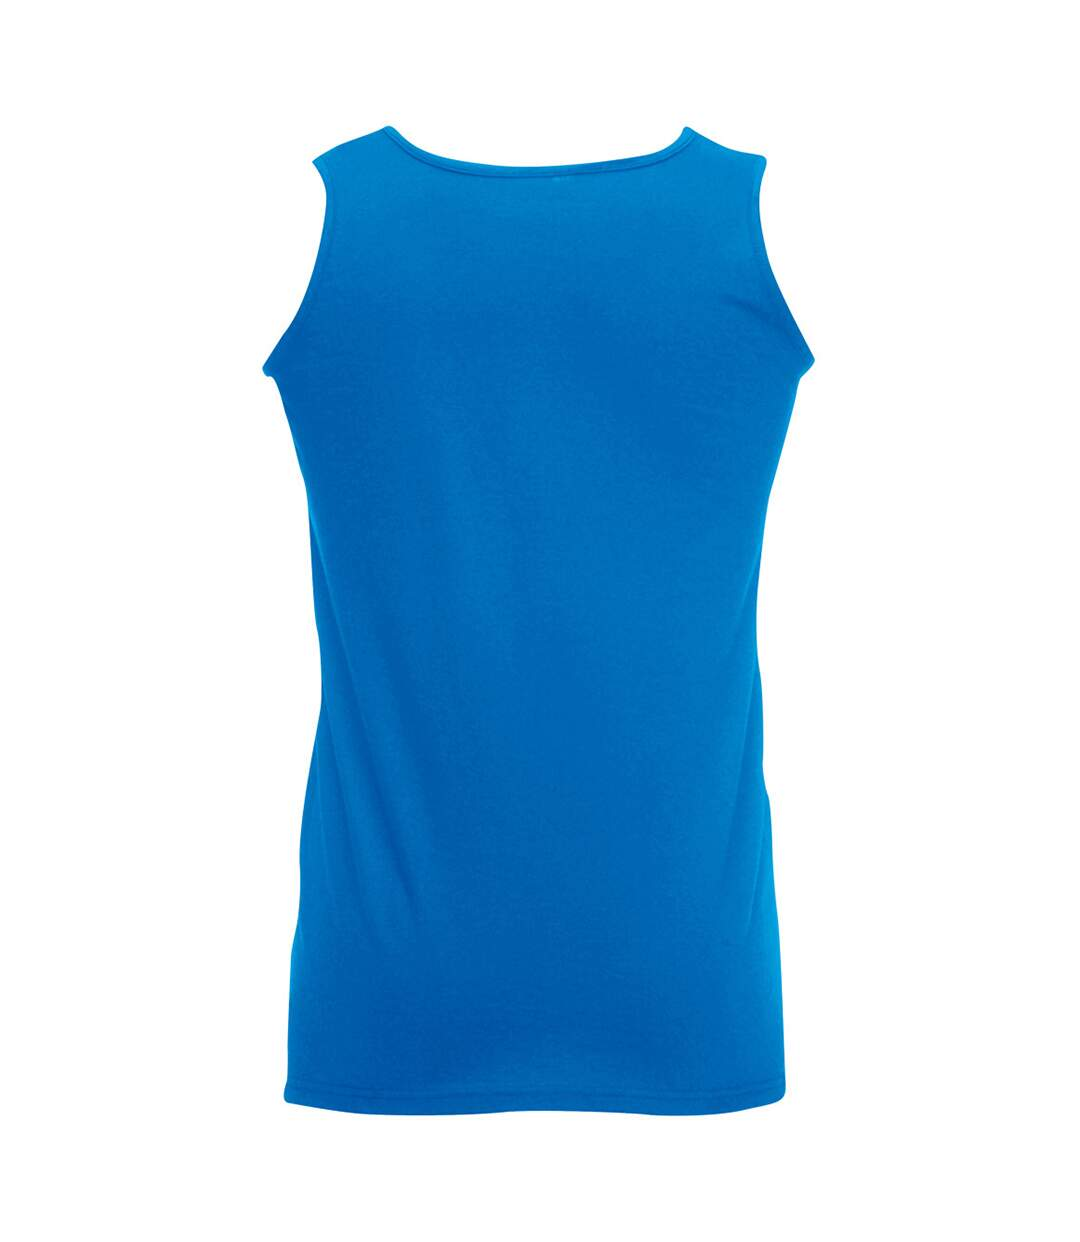 Fruit Of The Loom Mens Athletic Sleeveless Vest / Tank Top (Royal) - UTBC341